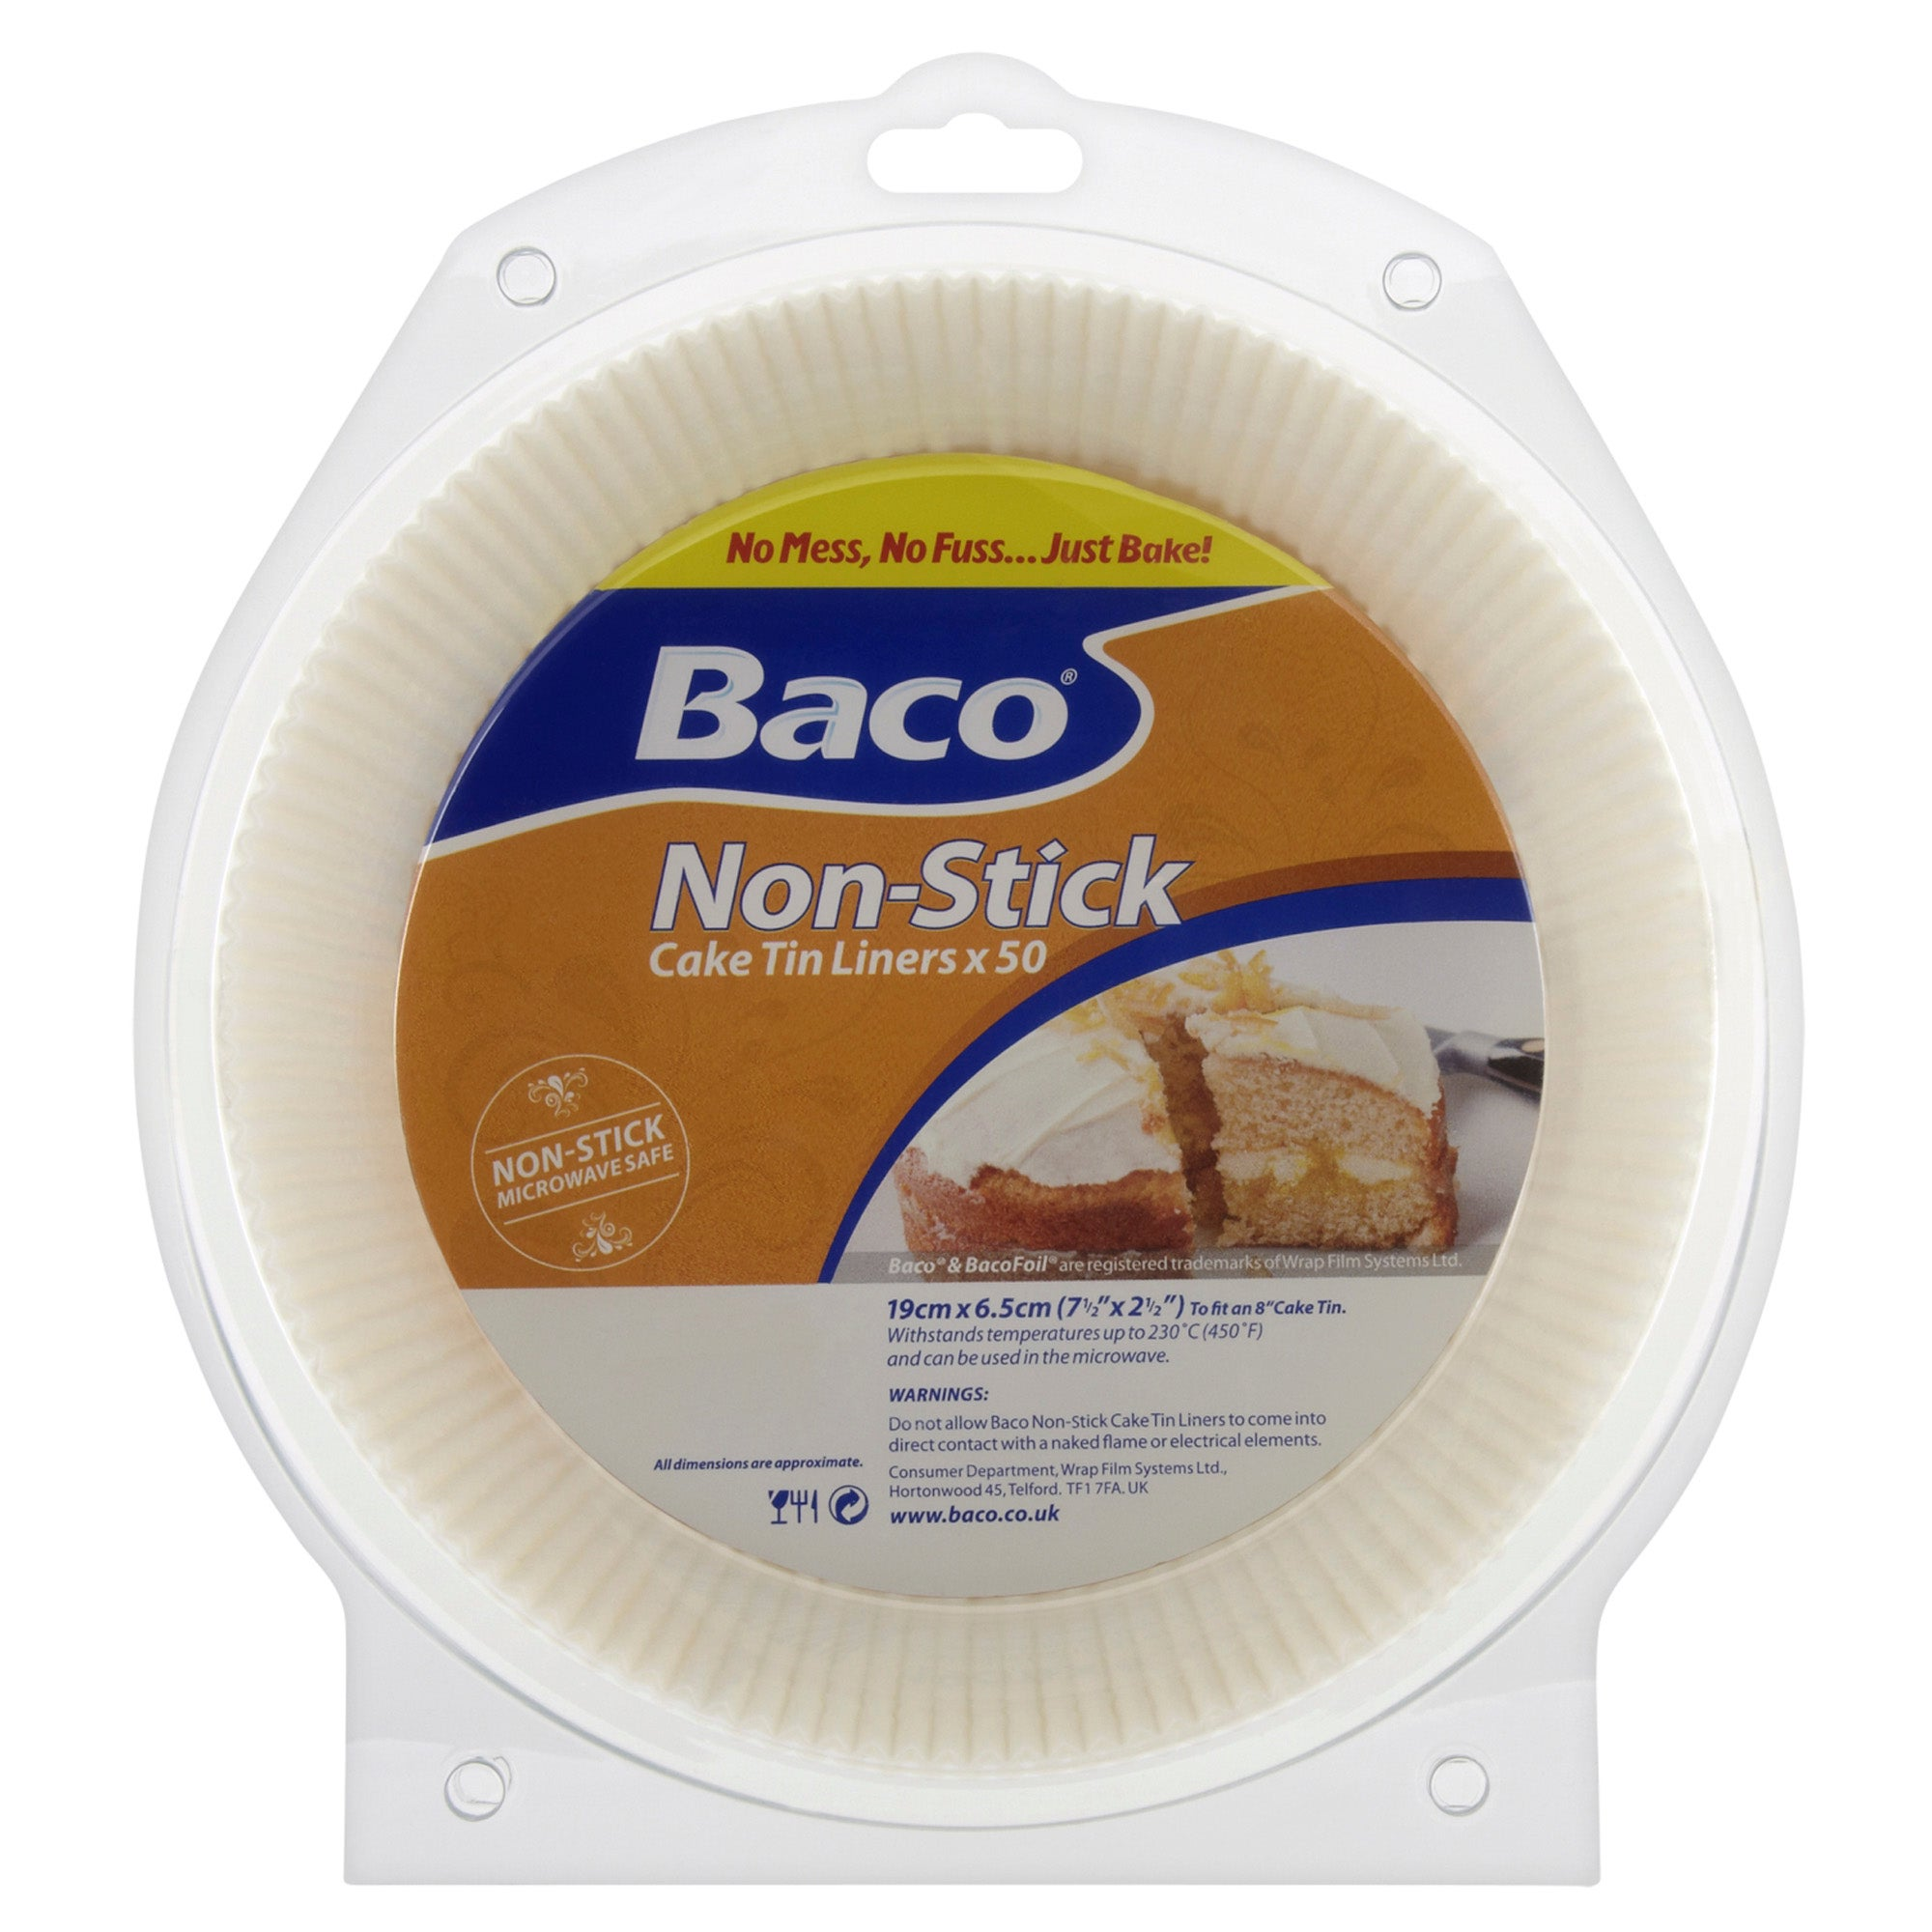 Baco Pack of 50 Cake Tin Liners